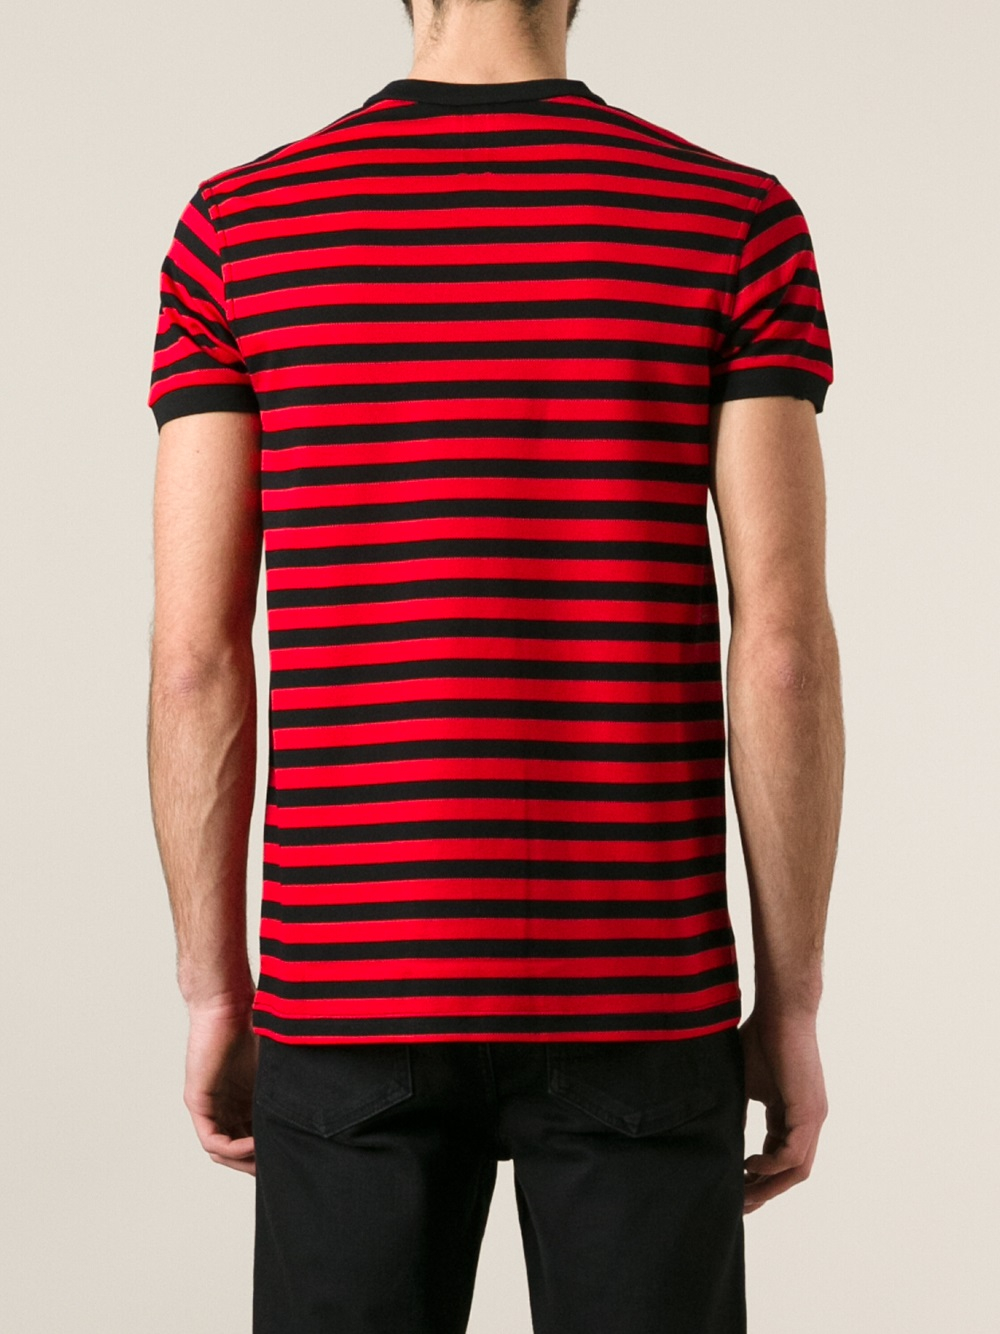 saint laurent striped polo shirt in red for men lyst